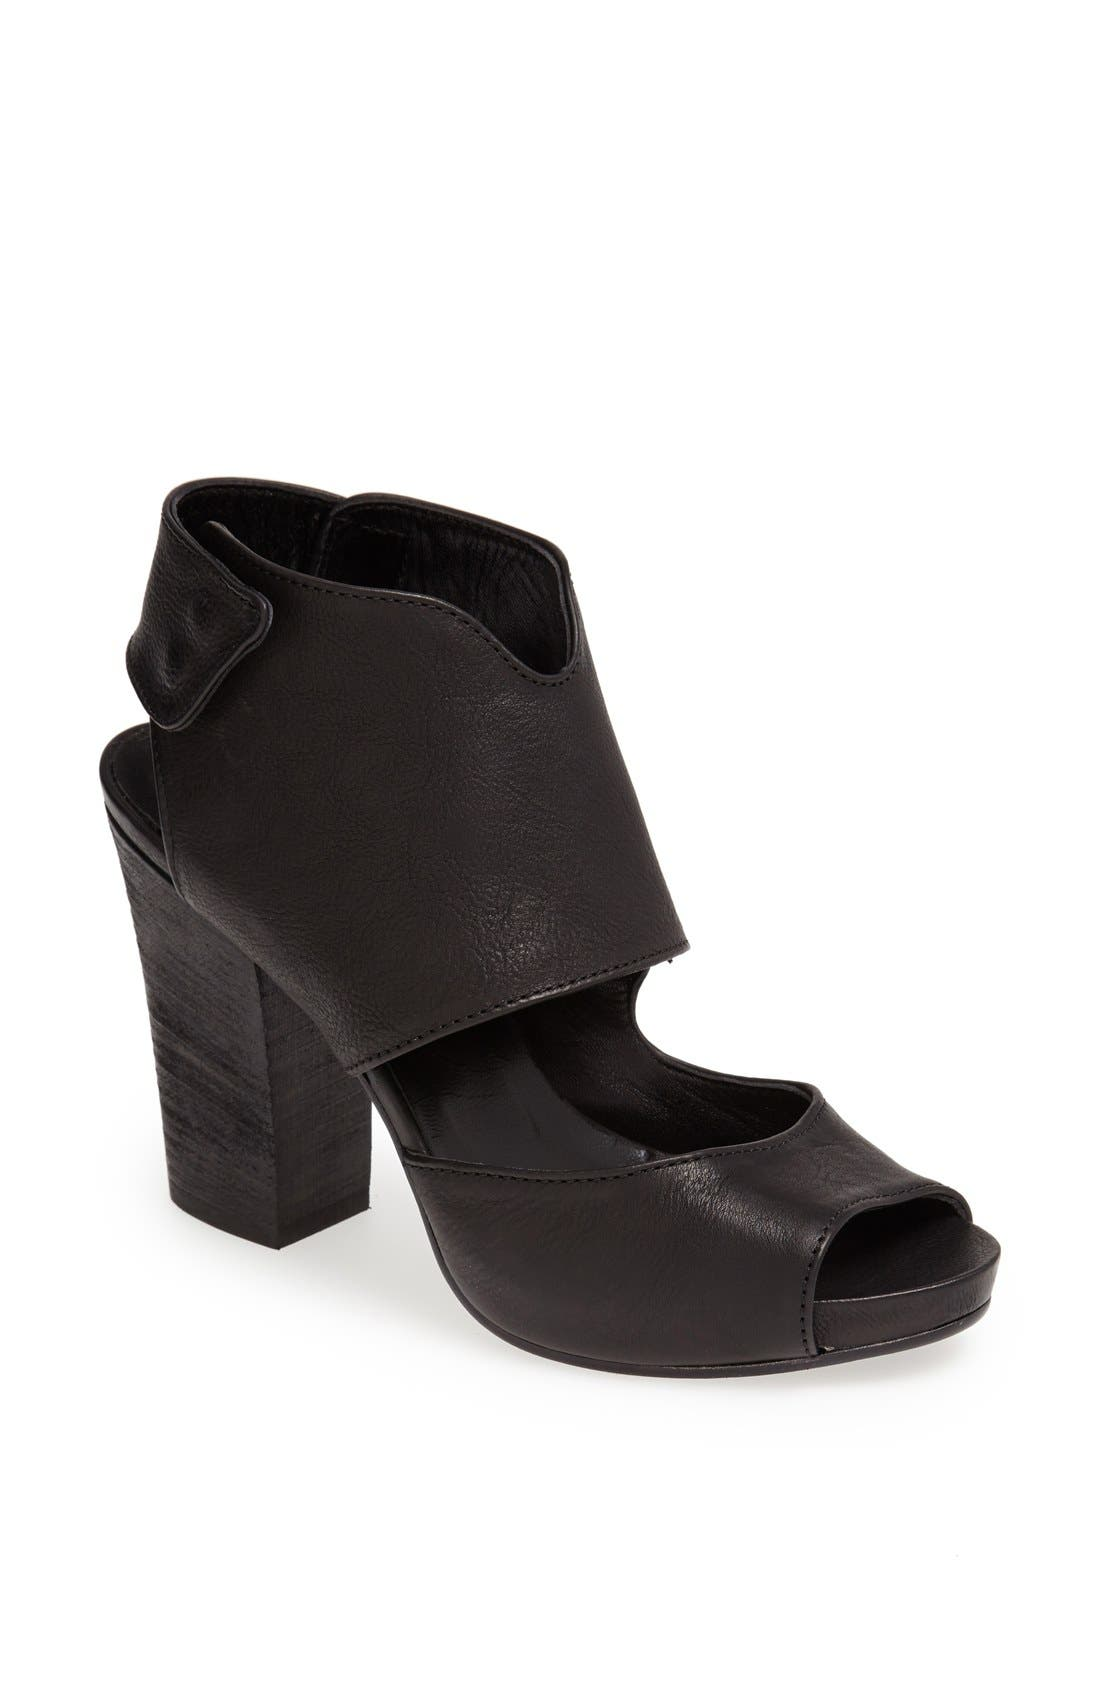 Alternate Image 1 Selected - Latitude Femme Stacked Heel Leather Sandal